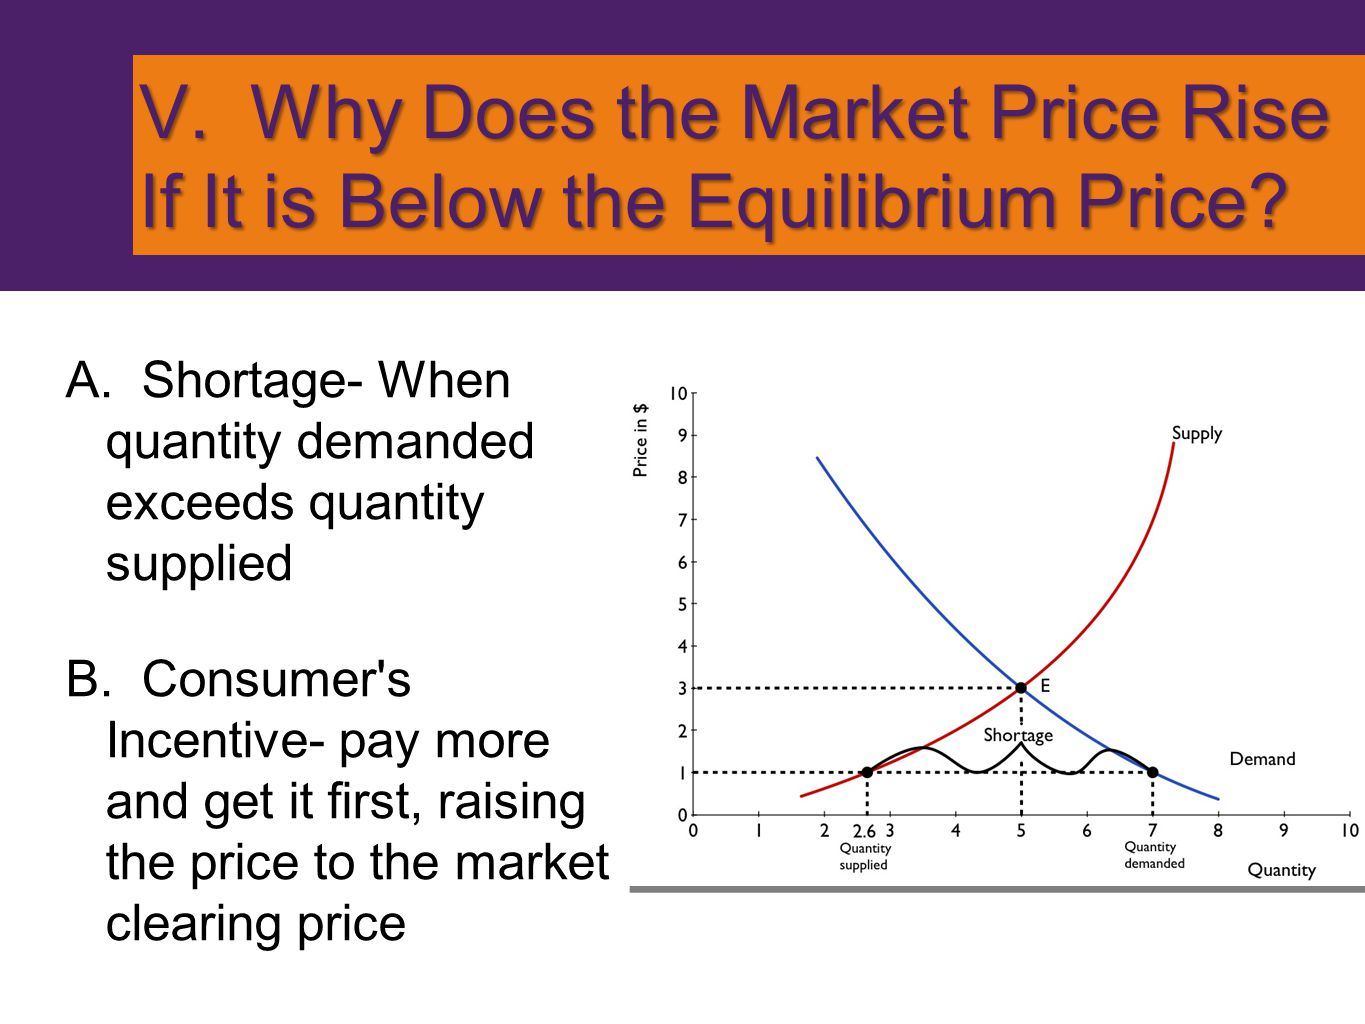 V. Why Does the Market Price Rise If It is Below the Equilibrium Price